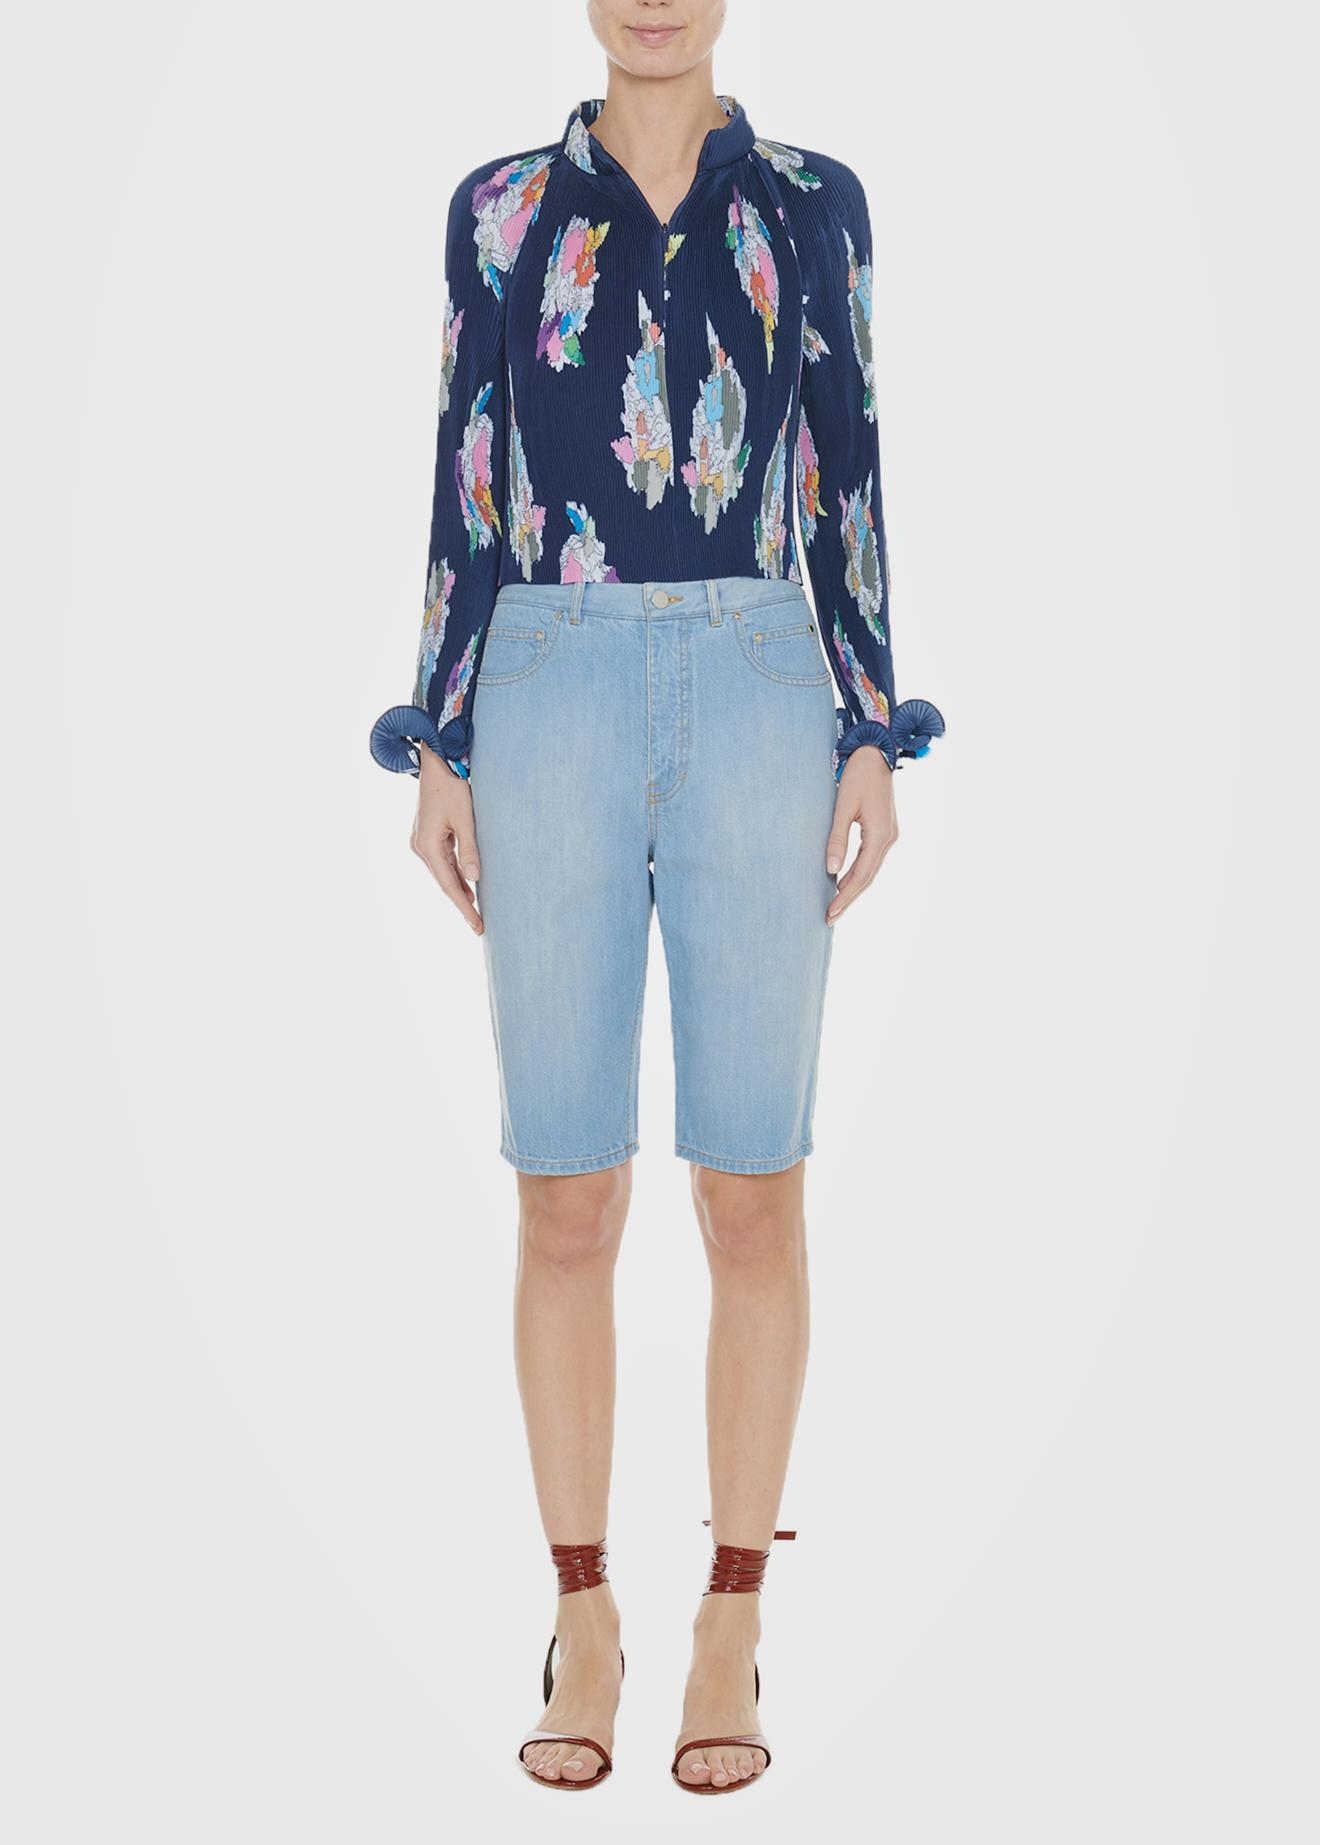 3dcb3e7b084af8 Lyst - Tibi Pleated Camellia Cropped Top in Blue